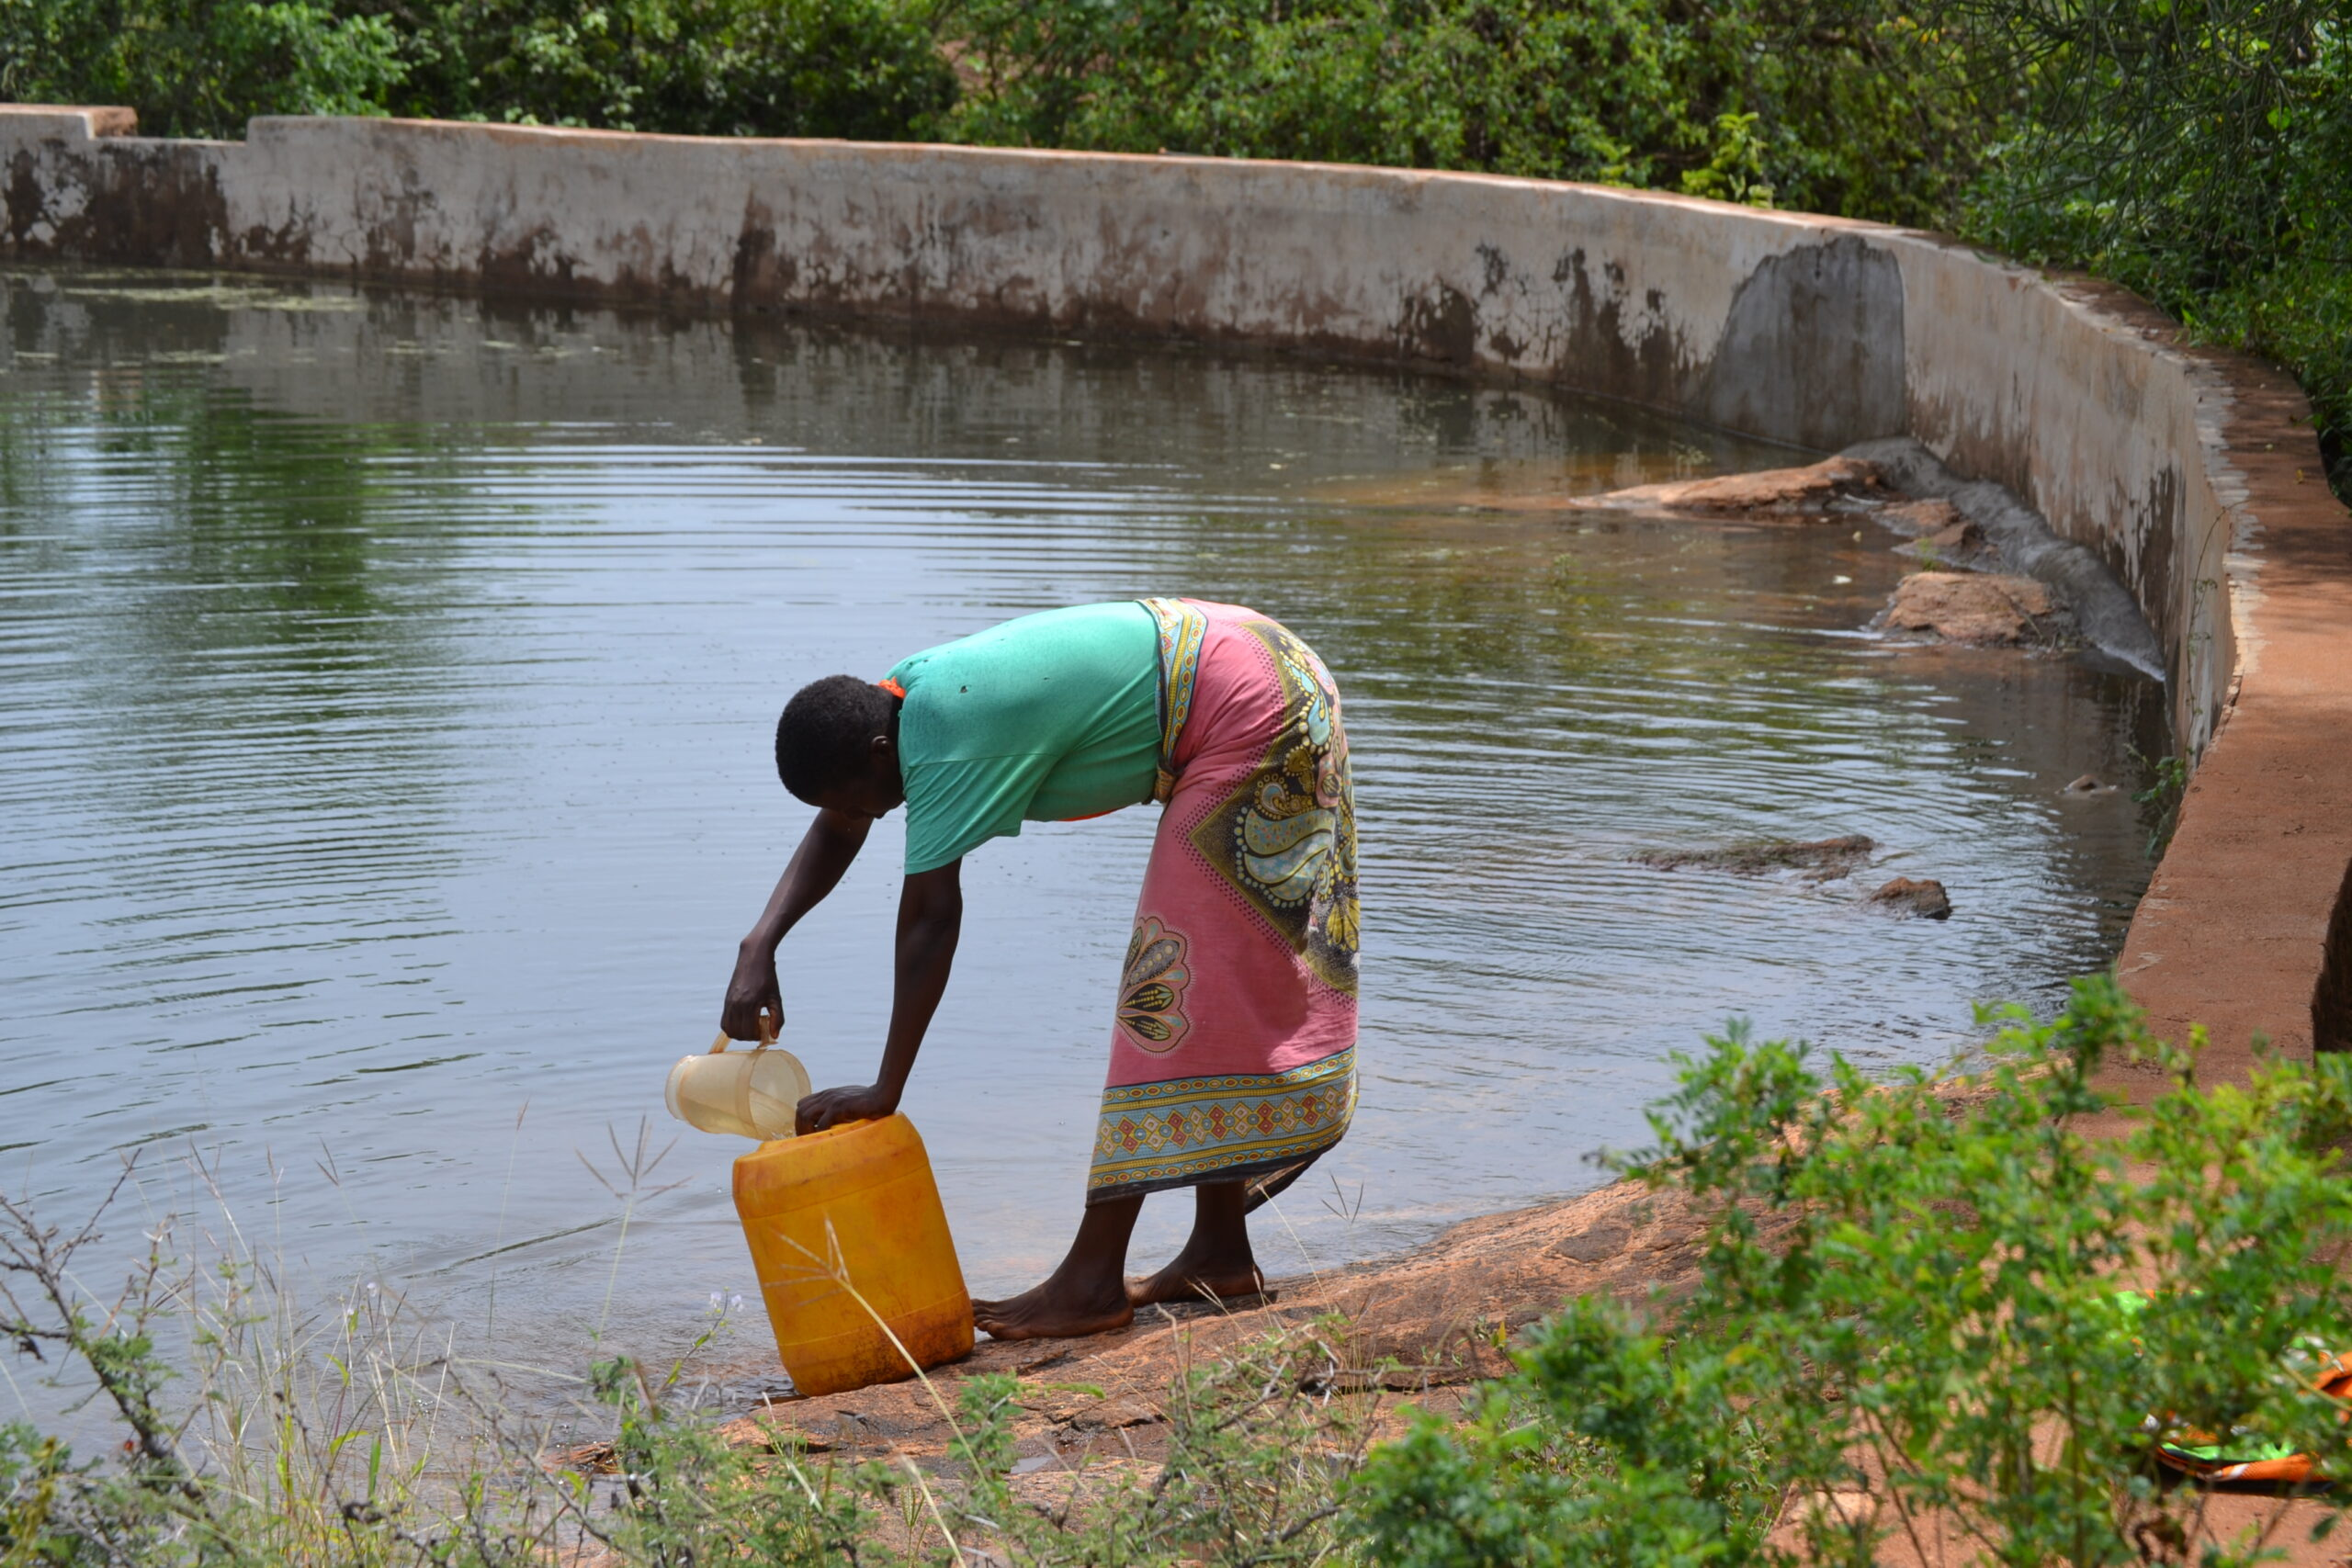 How a rock solved the water shortage problem in a Kenyan village